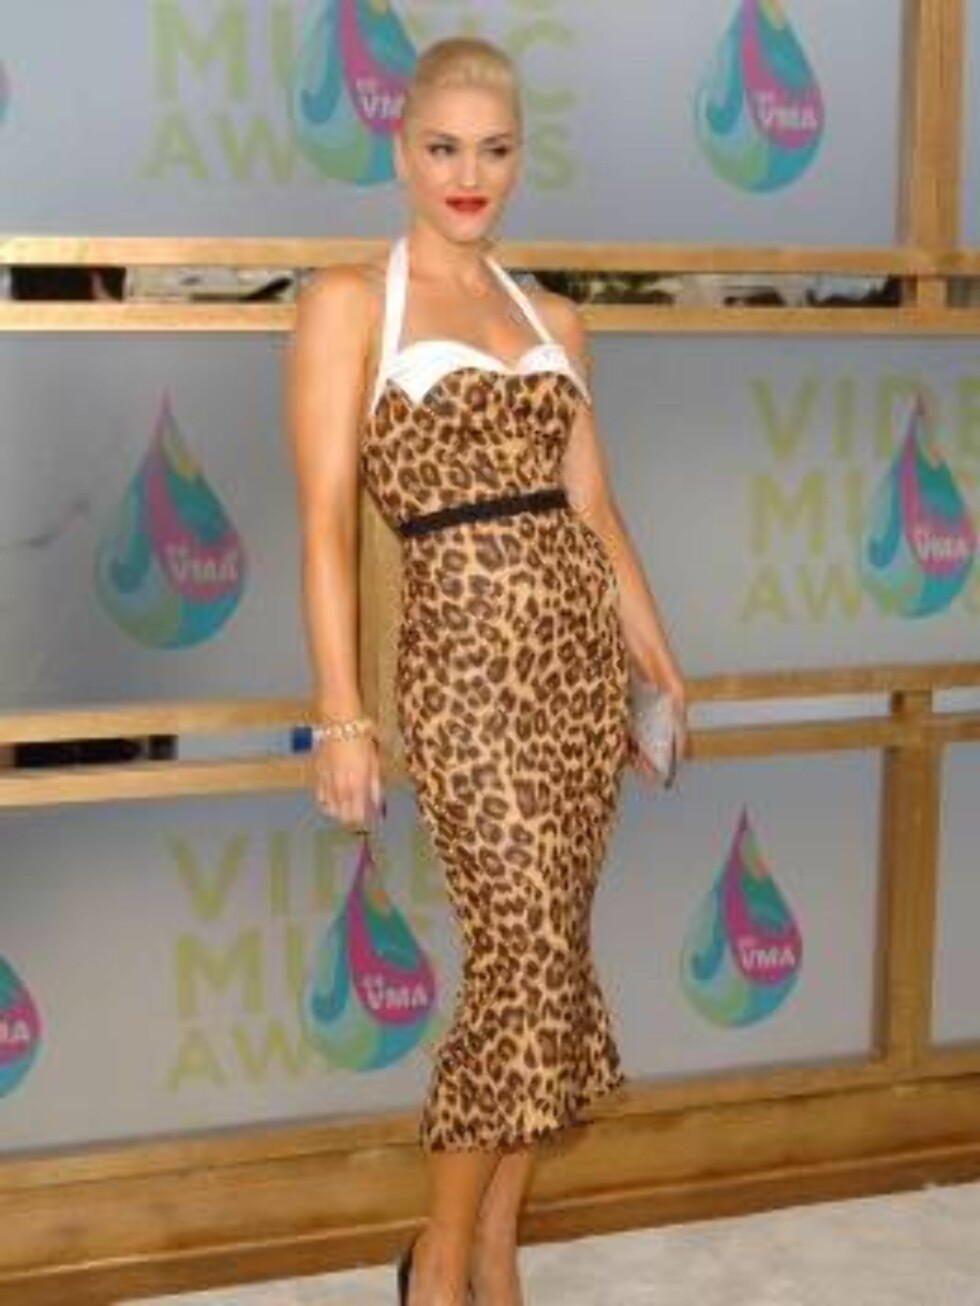 Aug 28, 2005; Miami, Florida, USA; Musician GWEN STEFANI as the 2005 MTV VMA - Arrivals held at an arena in Miami.  Photo: Lisa O'Connor/ZUMA Press.  Code:4014 COPYRIGHT STELLA PICTURES Foto: Stella Pictures